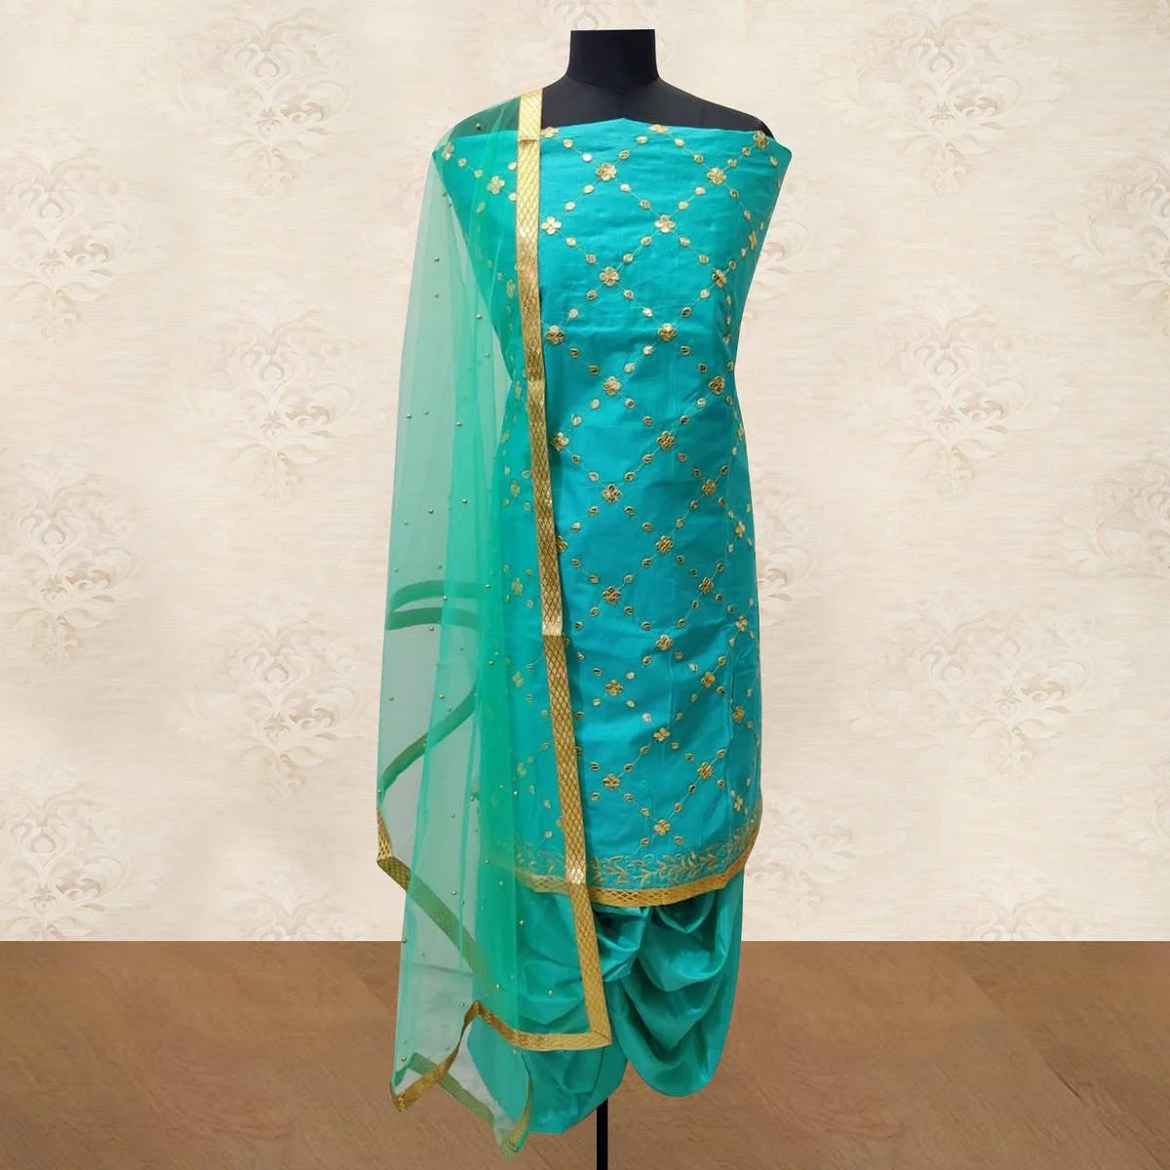 IRIS - Aqua Blue Colored Party Wear Gotapatti Embroidered Cotton Patiyala Style Dress Material